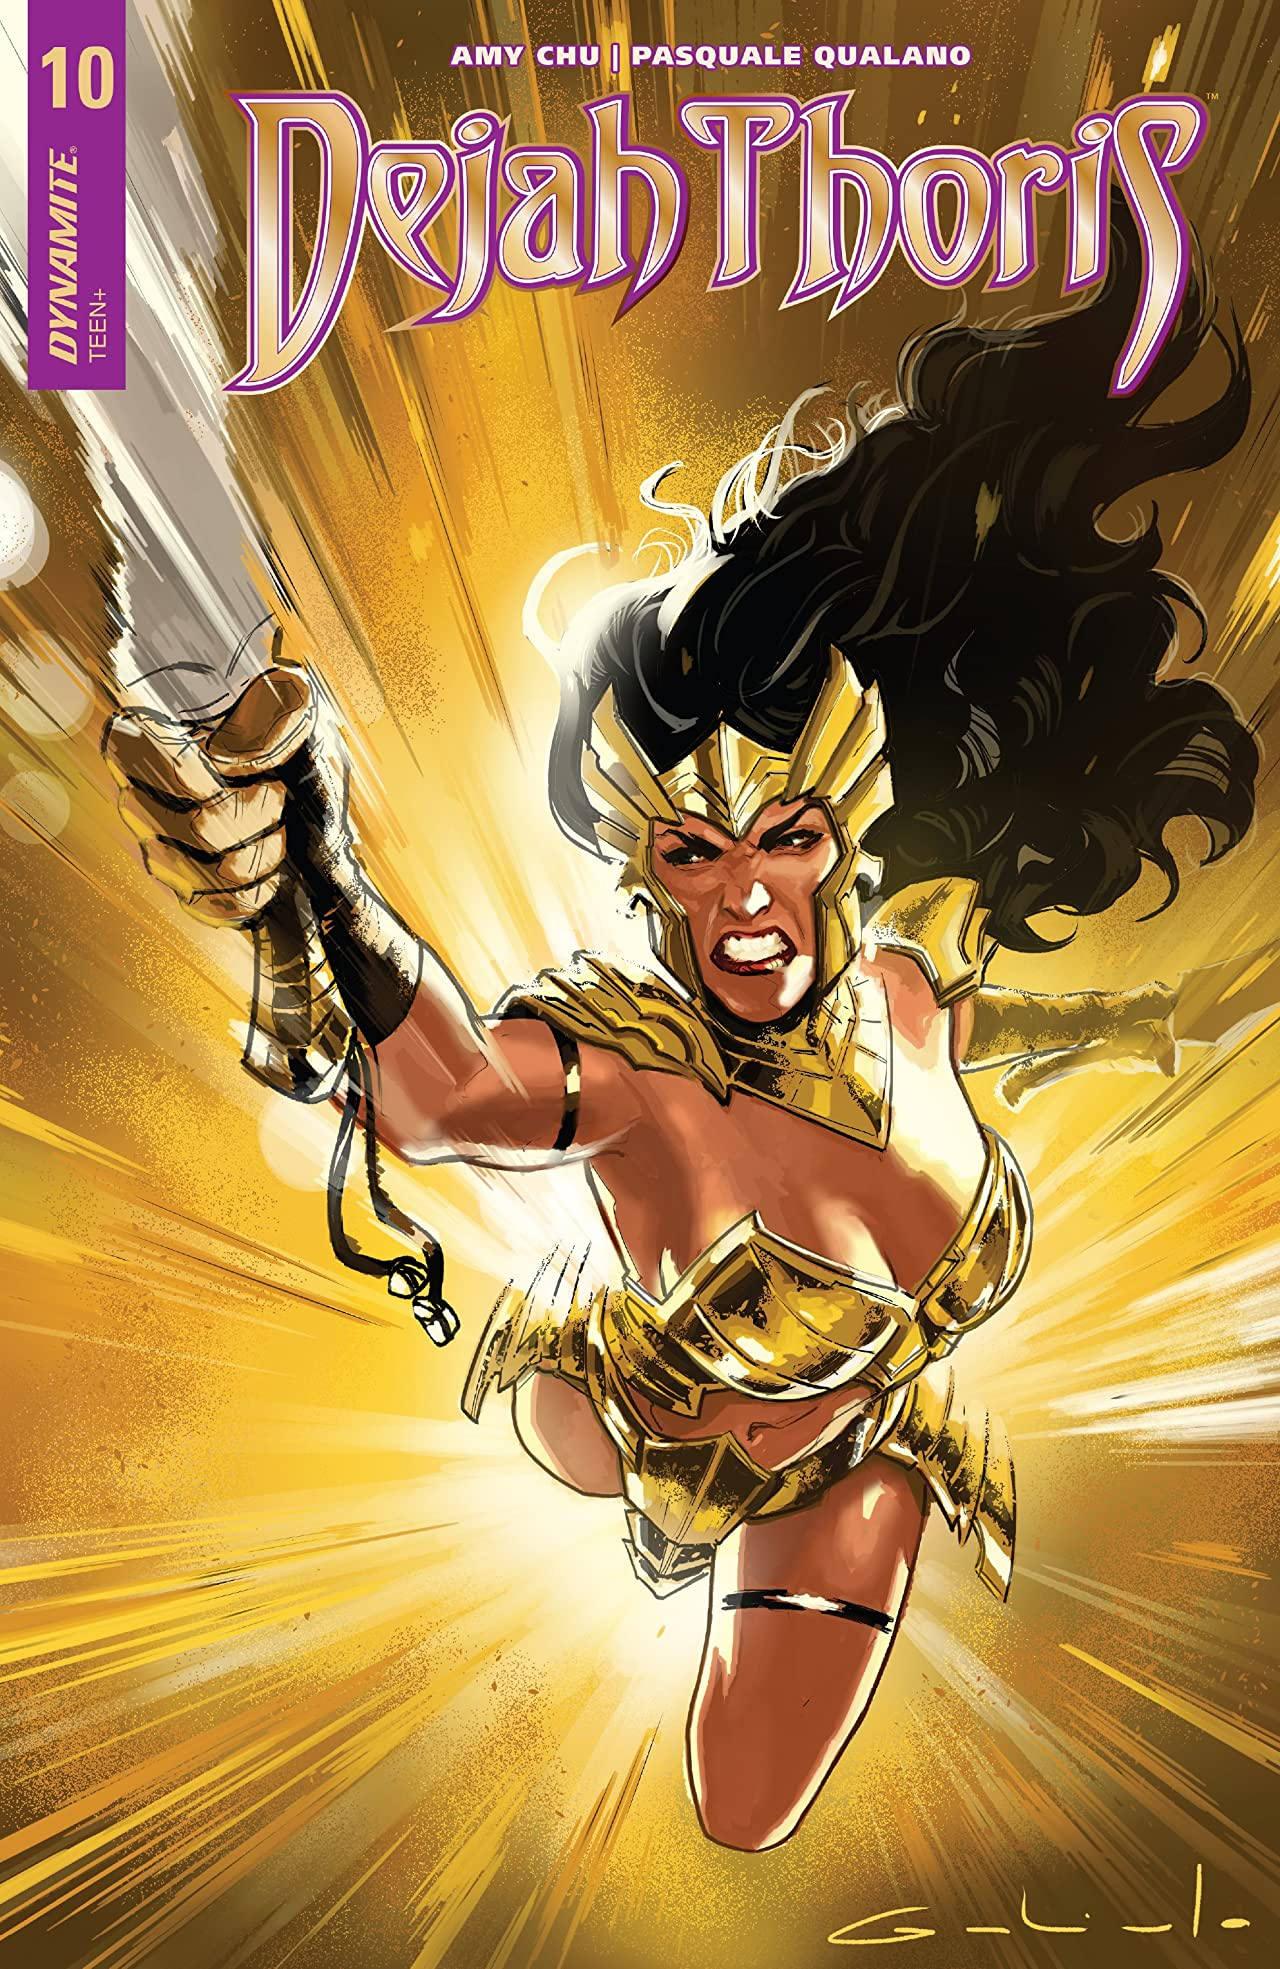 Dejah Thoris Vol. 4 No.10